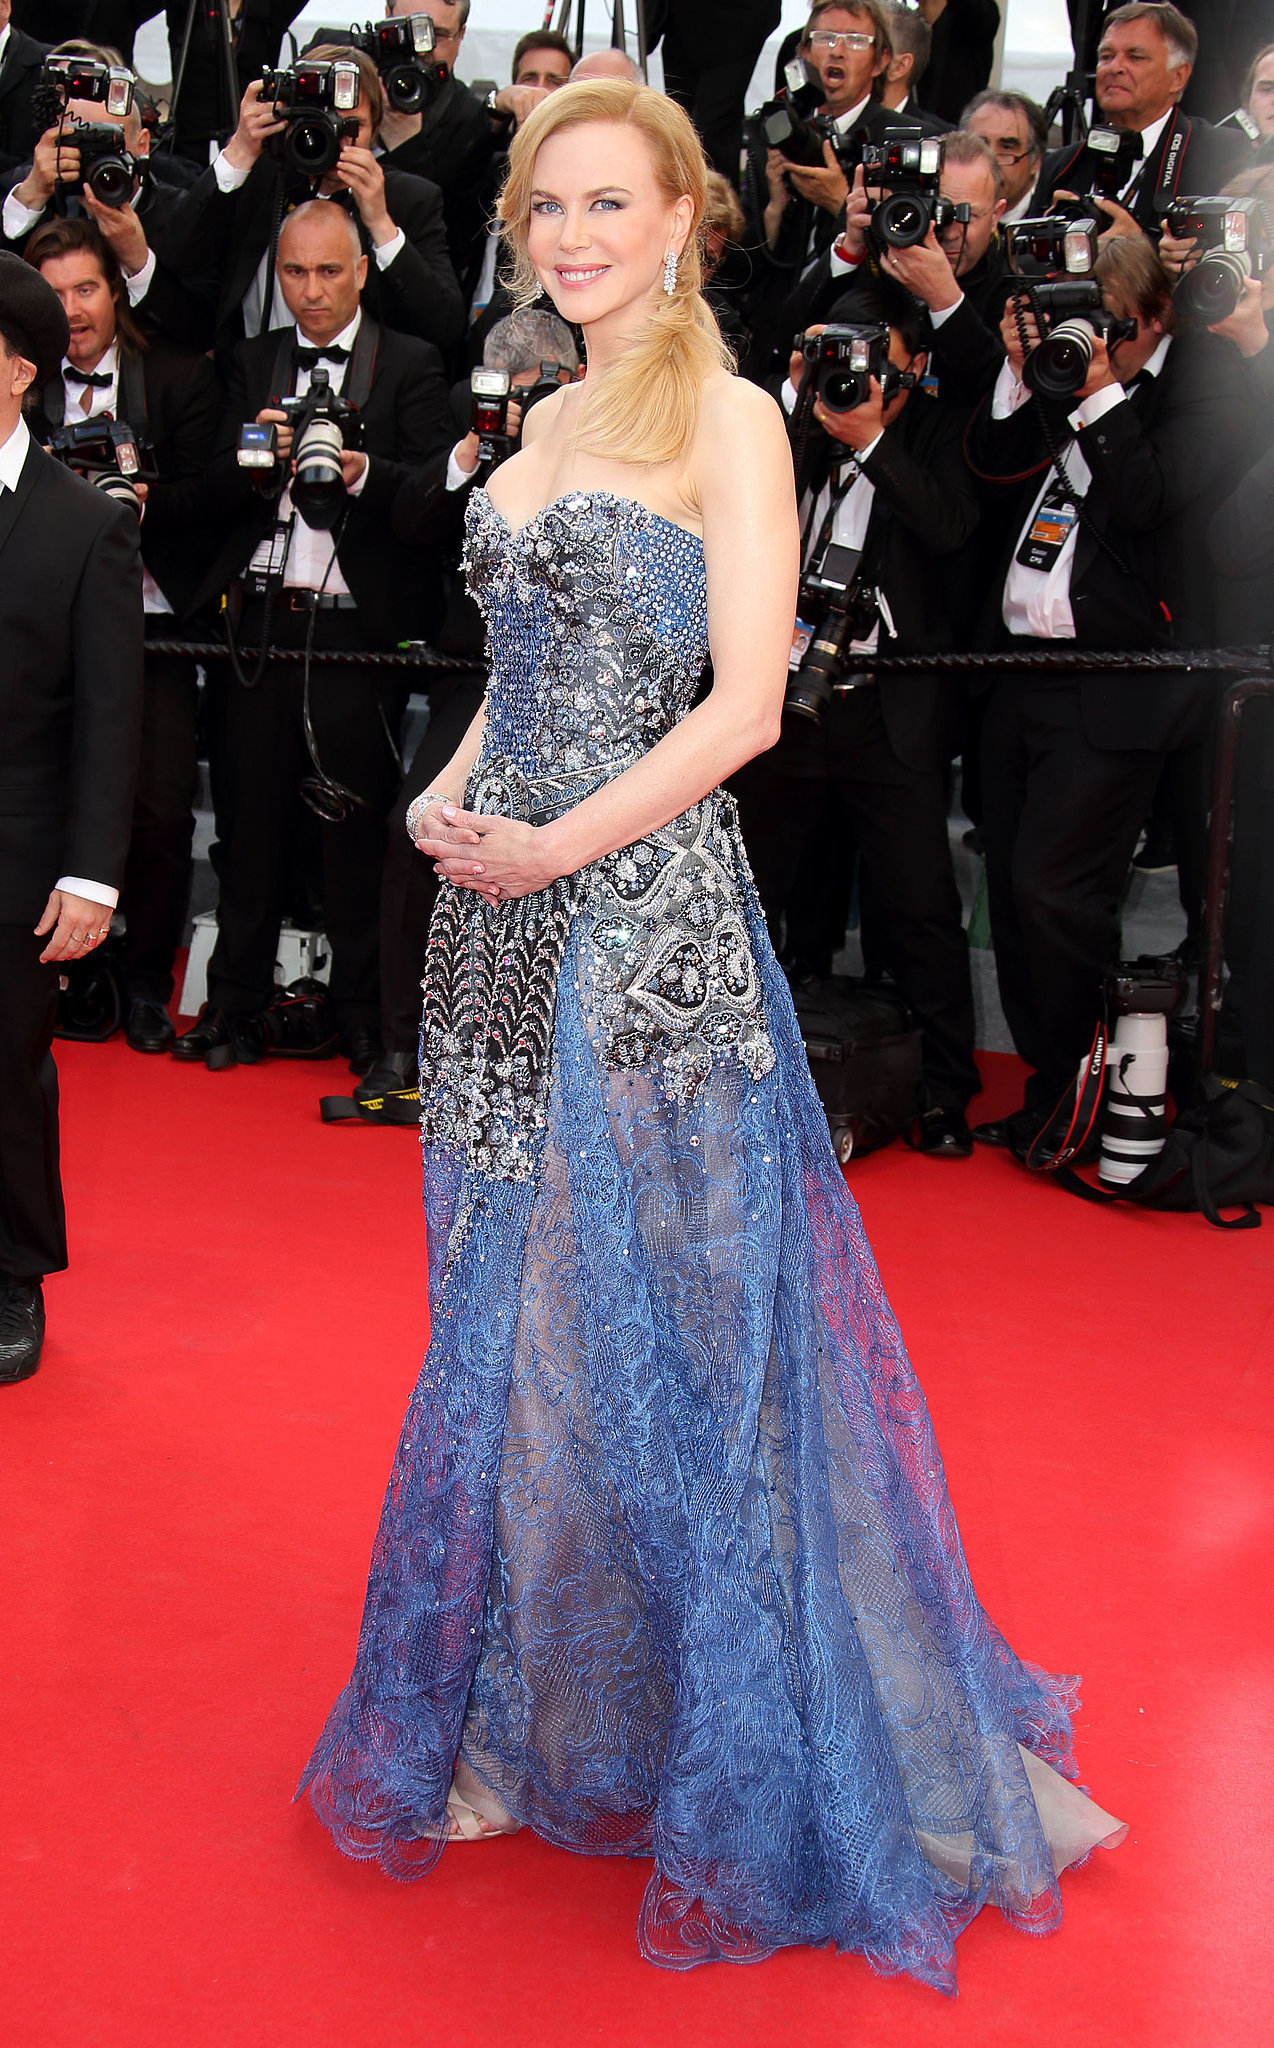 Nicole Kidman kicked off the festivities in a blue and metallic Armani Privé gown at the star